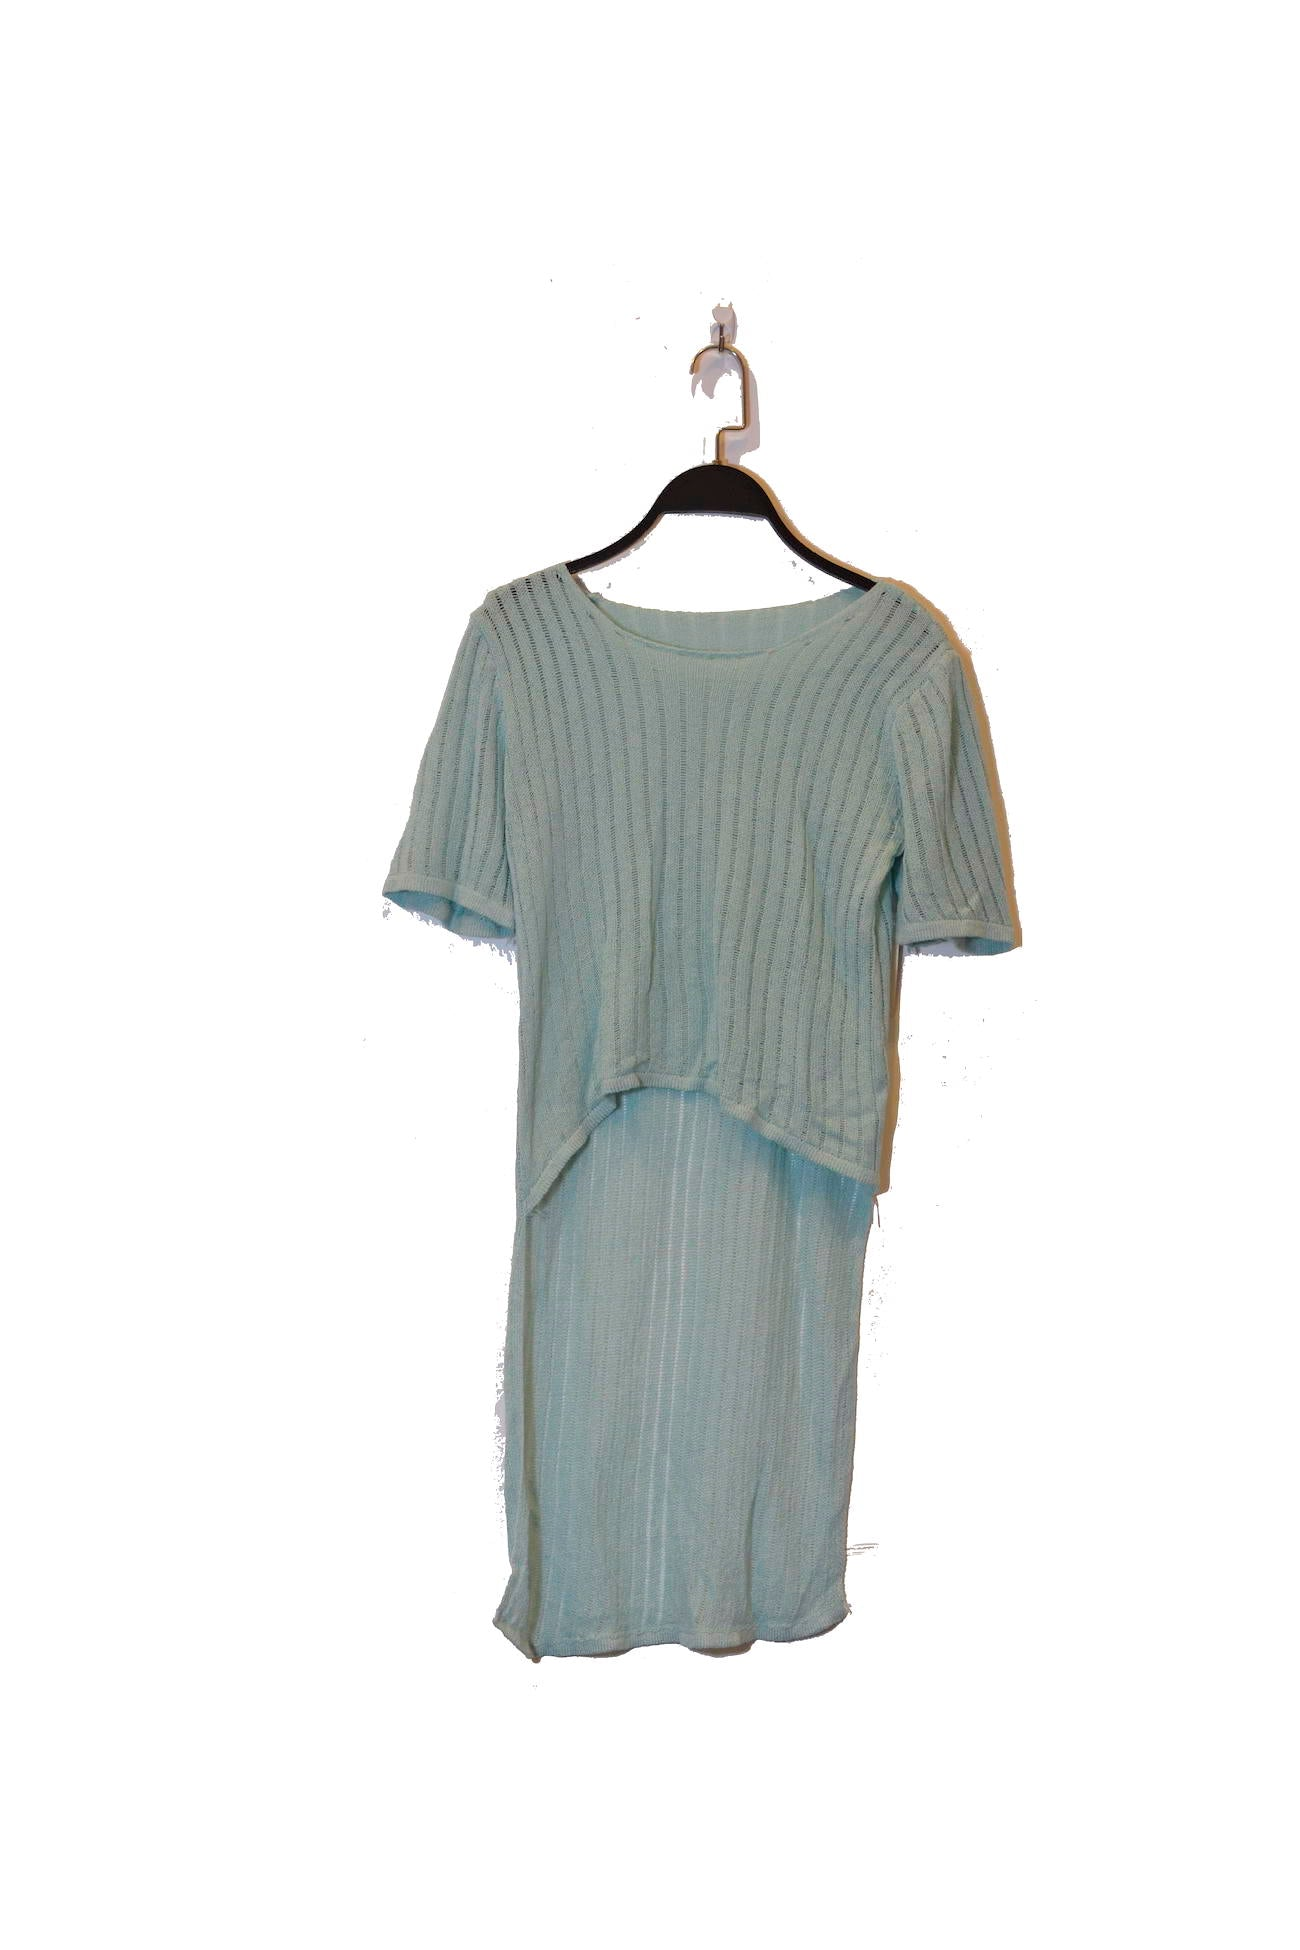 Blue High Low Semi-Sheer Top With Short Sleeves and round neckline